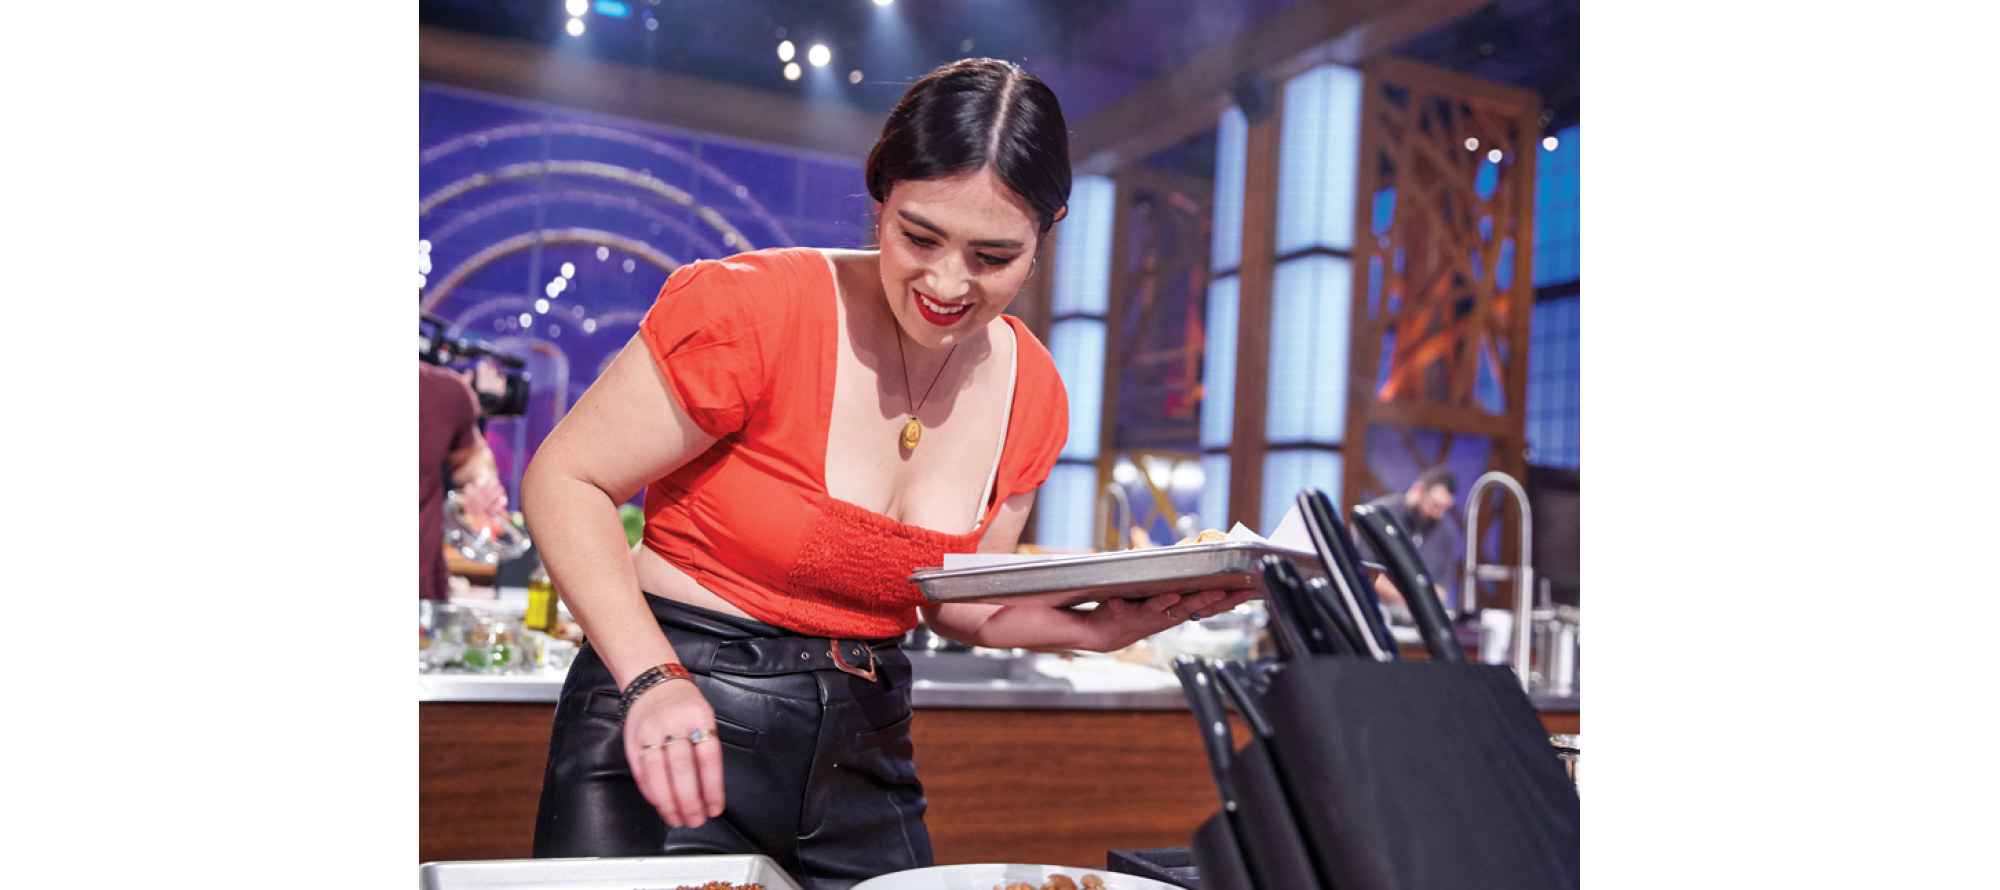 Show time! Local home cook Kimberly Fitzpatrick stars in Season 6 of MasterChef Canada